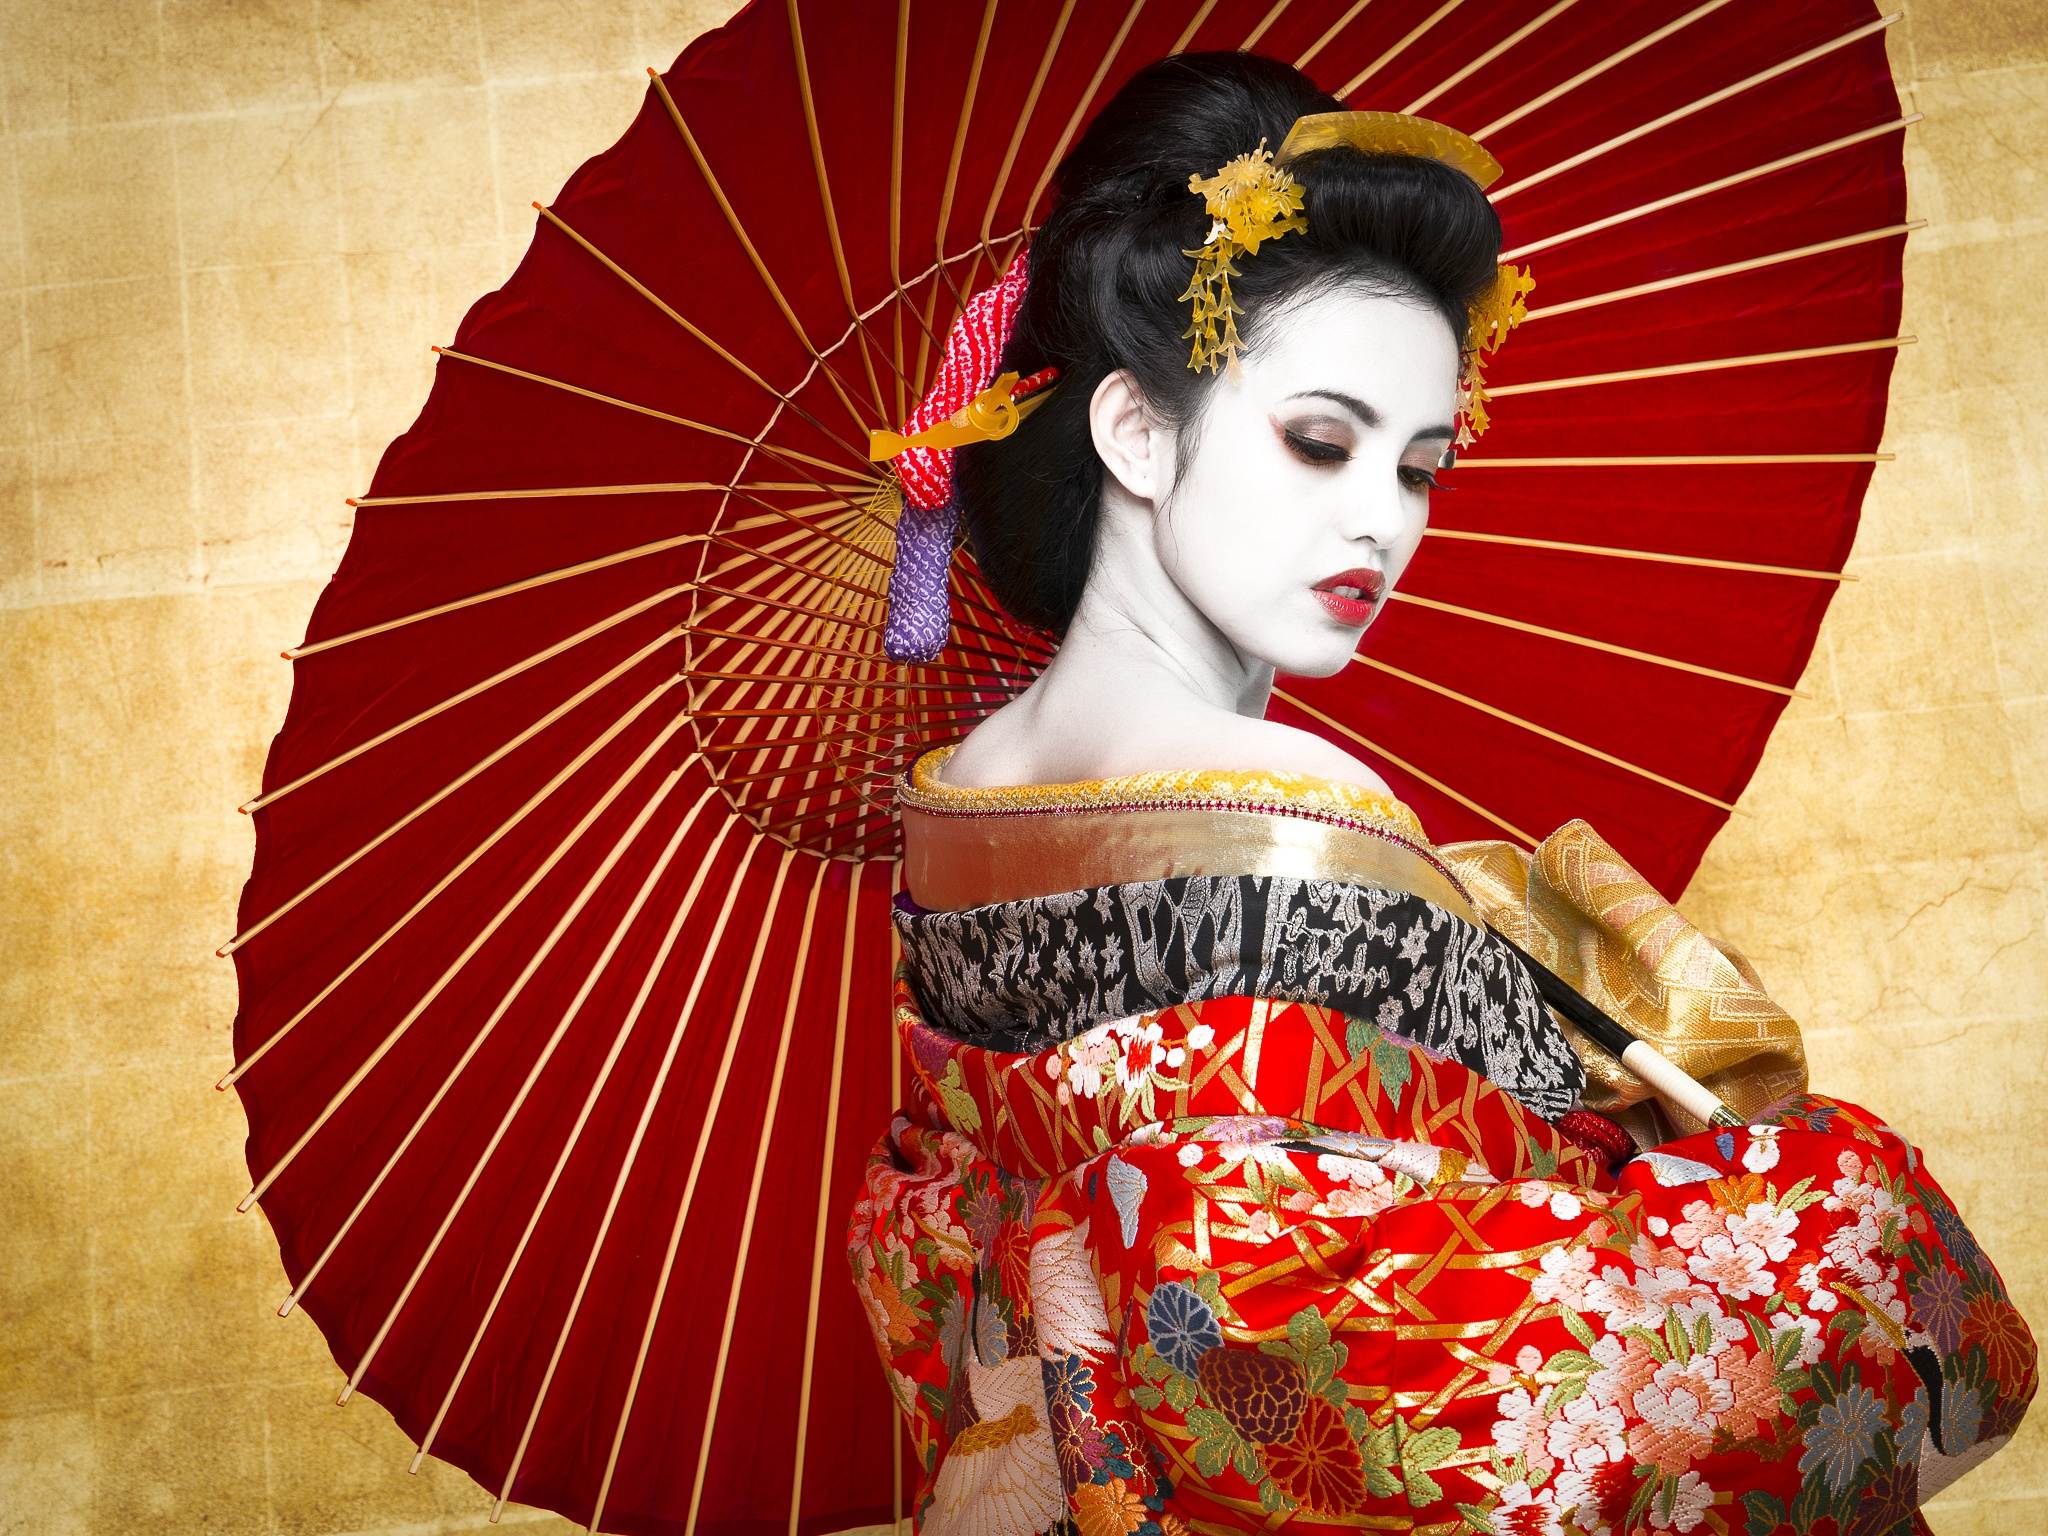 Oiran by Jan Brunæs